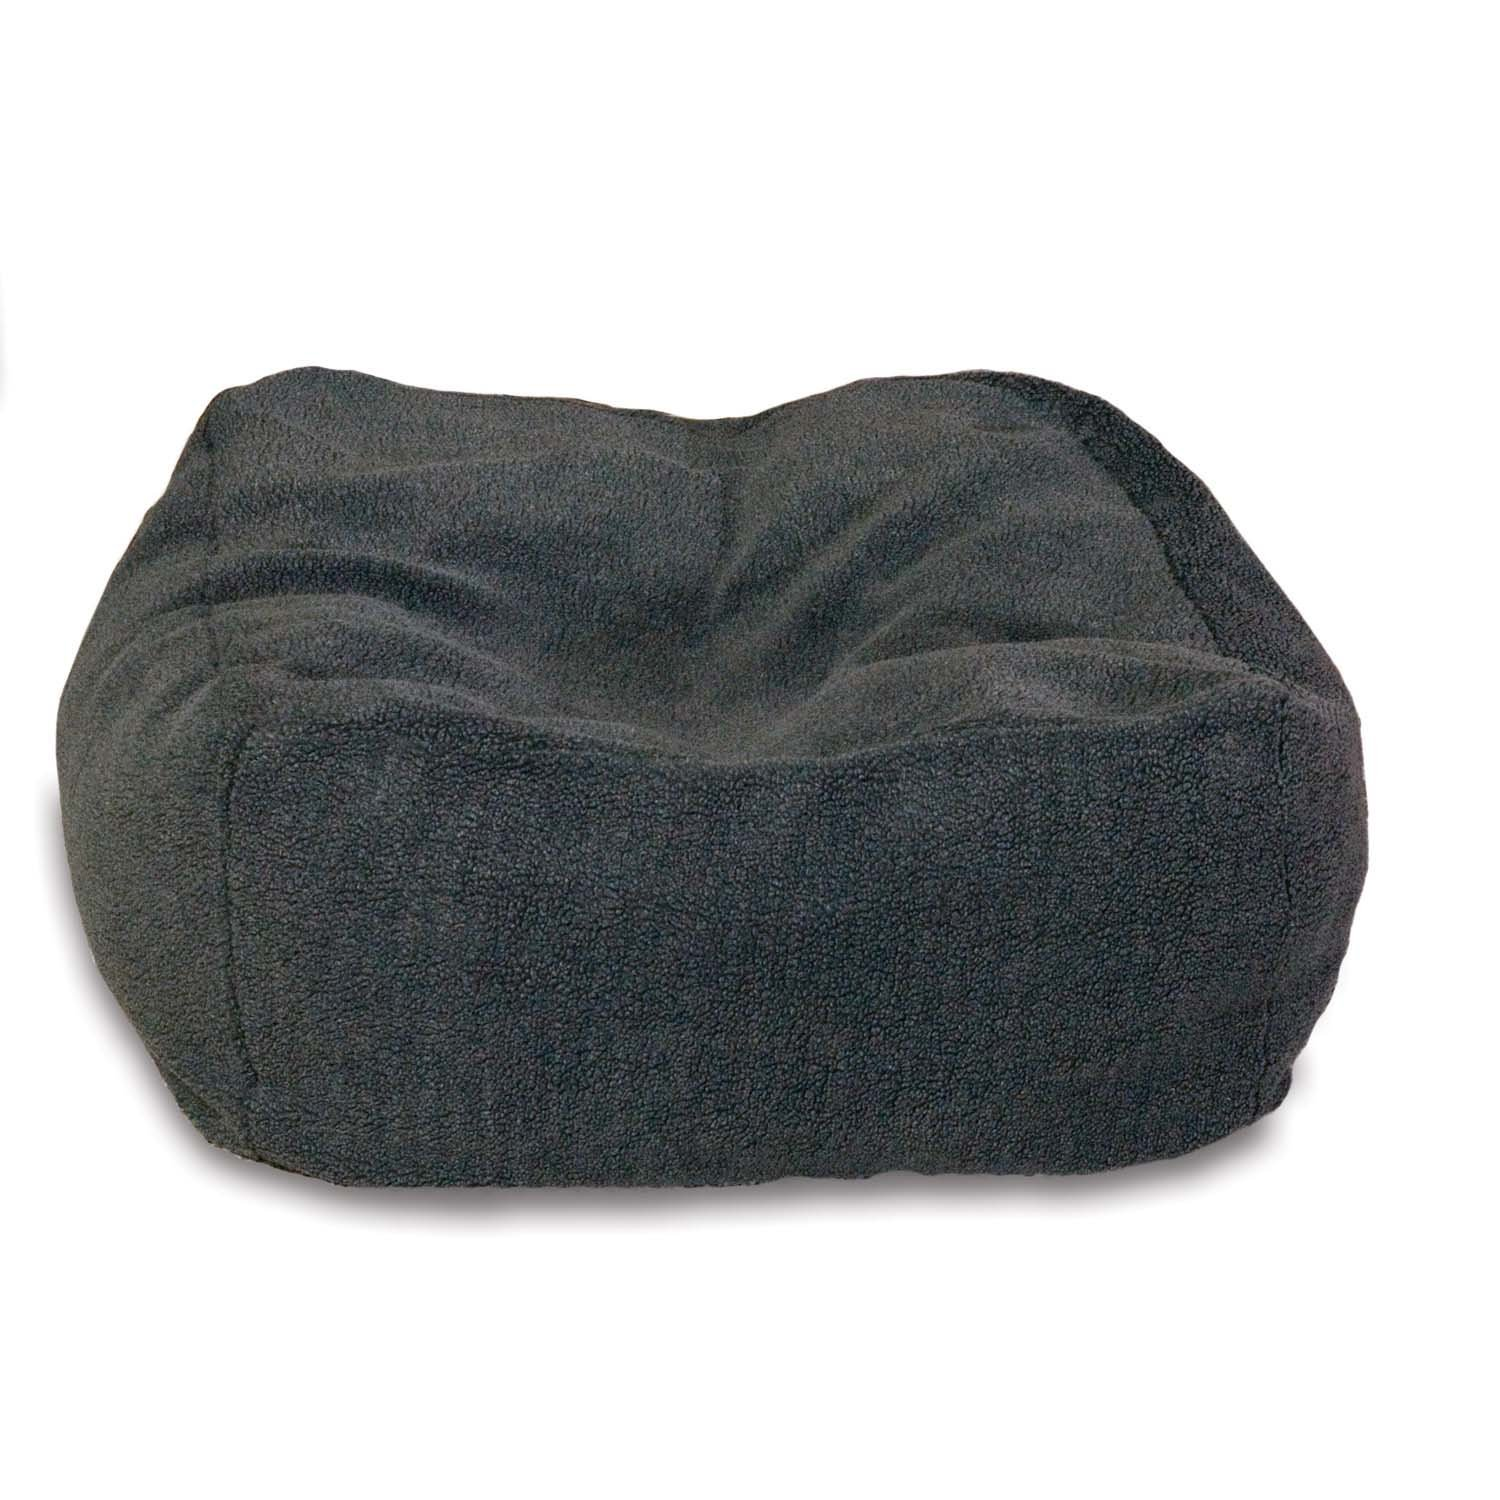 K&H Pet Products Cuddle Cube Pet Bed Large Gray 32'' x 32''